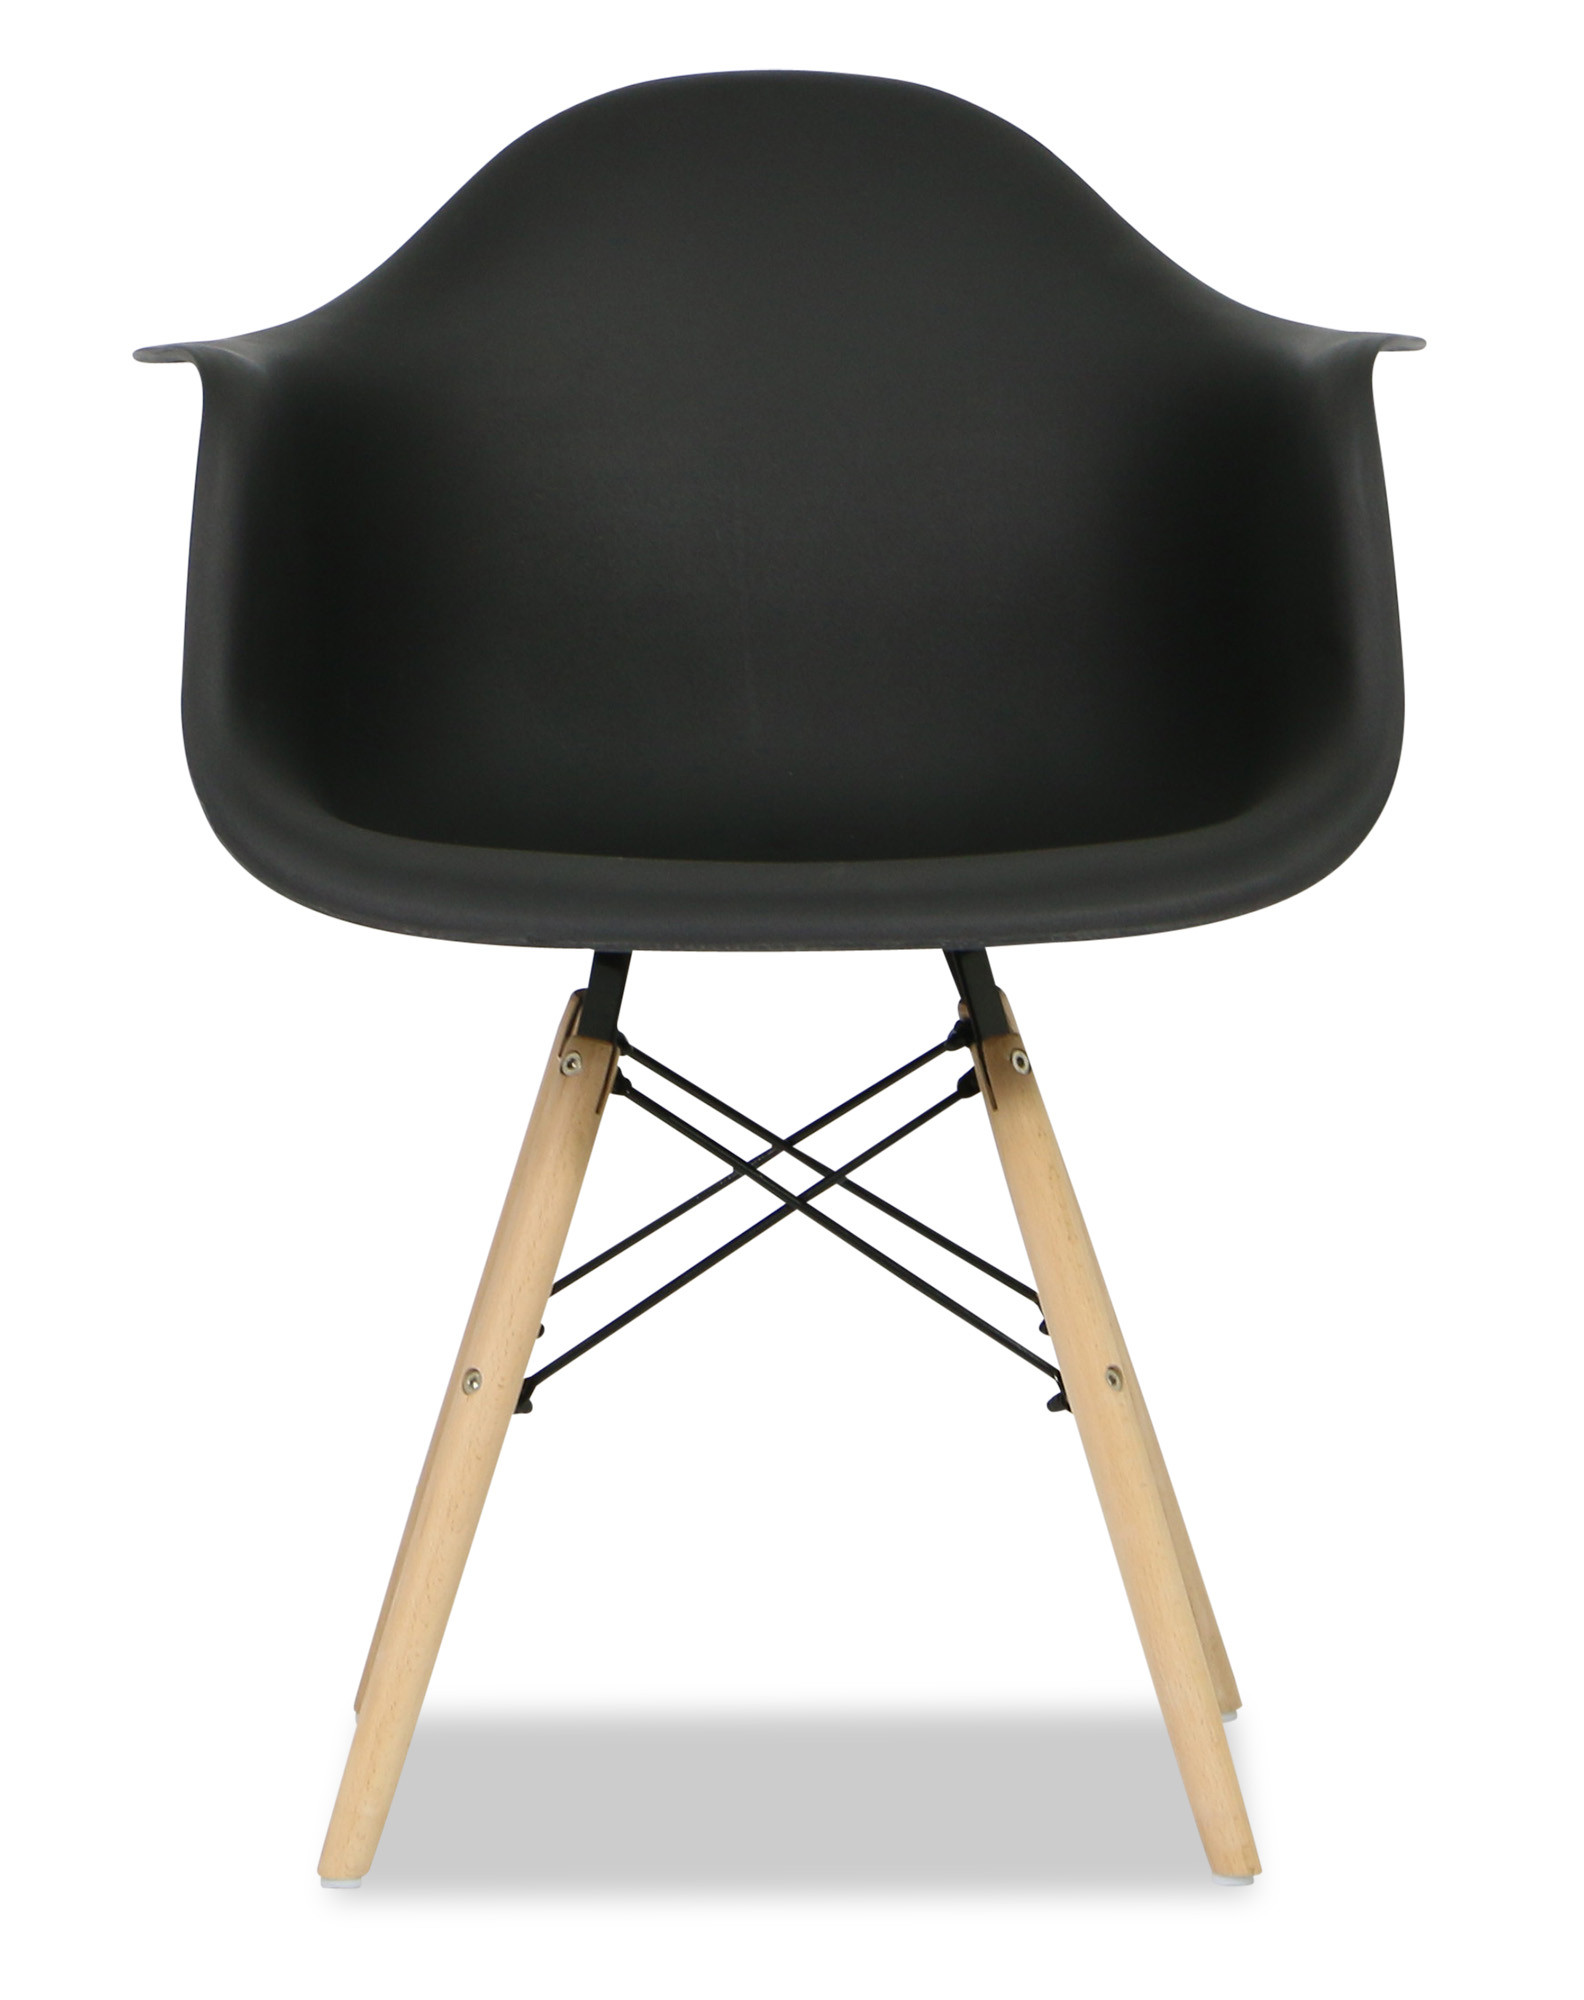 eames replica designer arm chair black armchairs. Black Bedroom Furniture Sets. Home Design Ideas